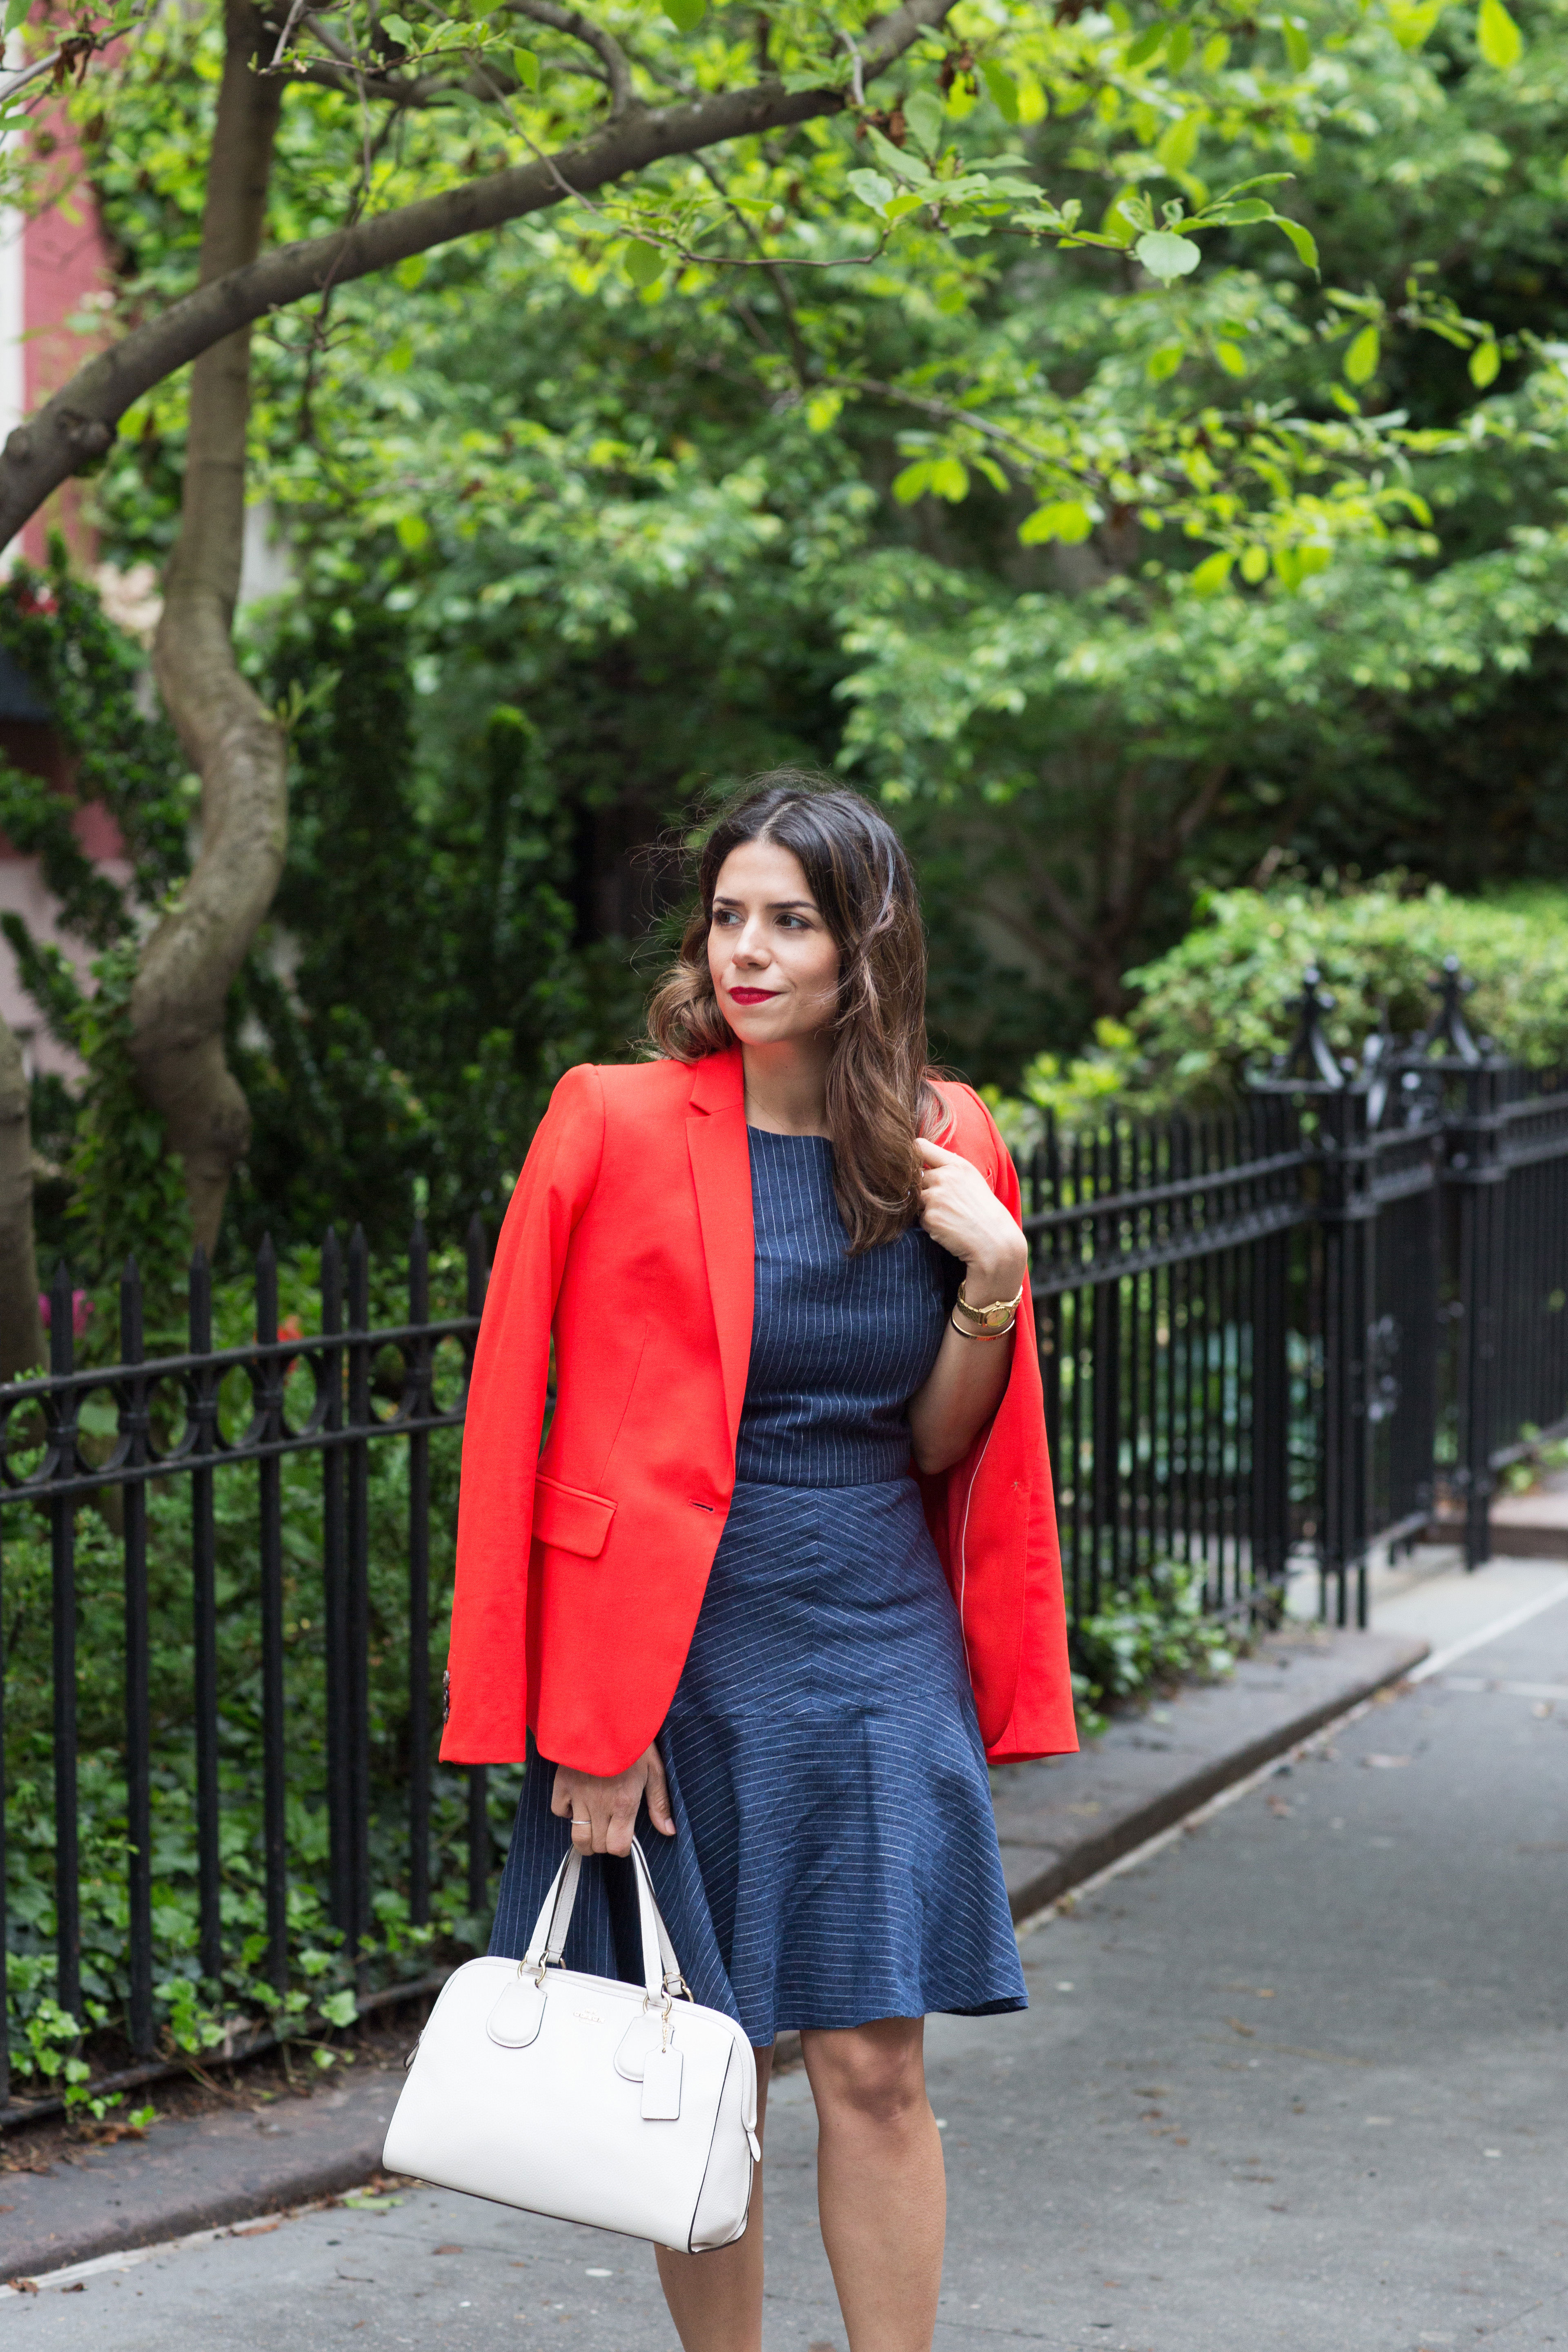 workwear-outfit-for-spring-wearing-Banana-Republic-Red-Blazer-with-denim-dress-and-white-coach-purse6